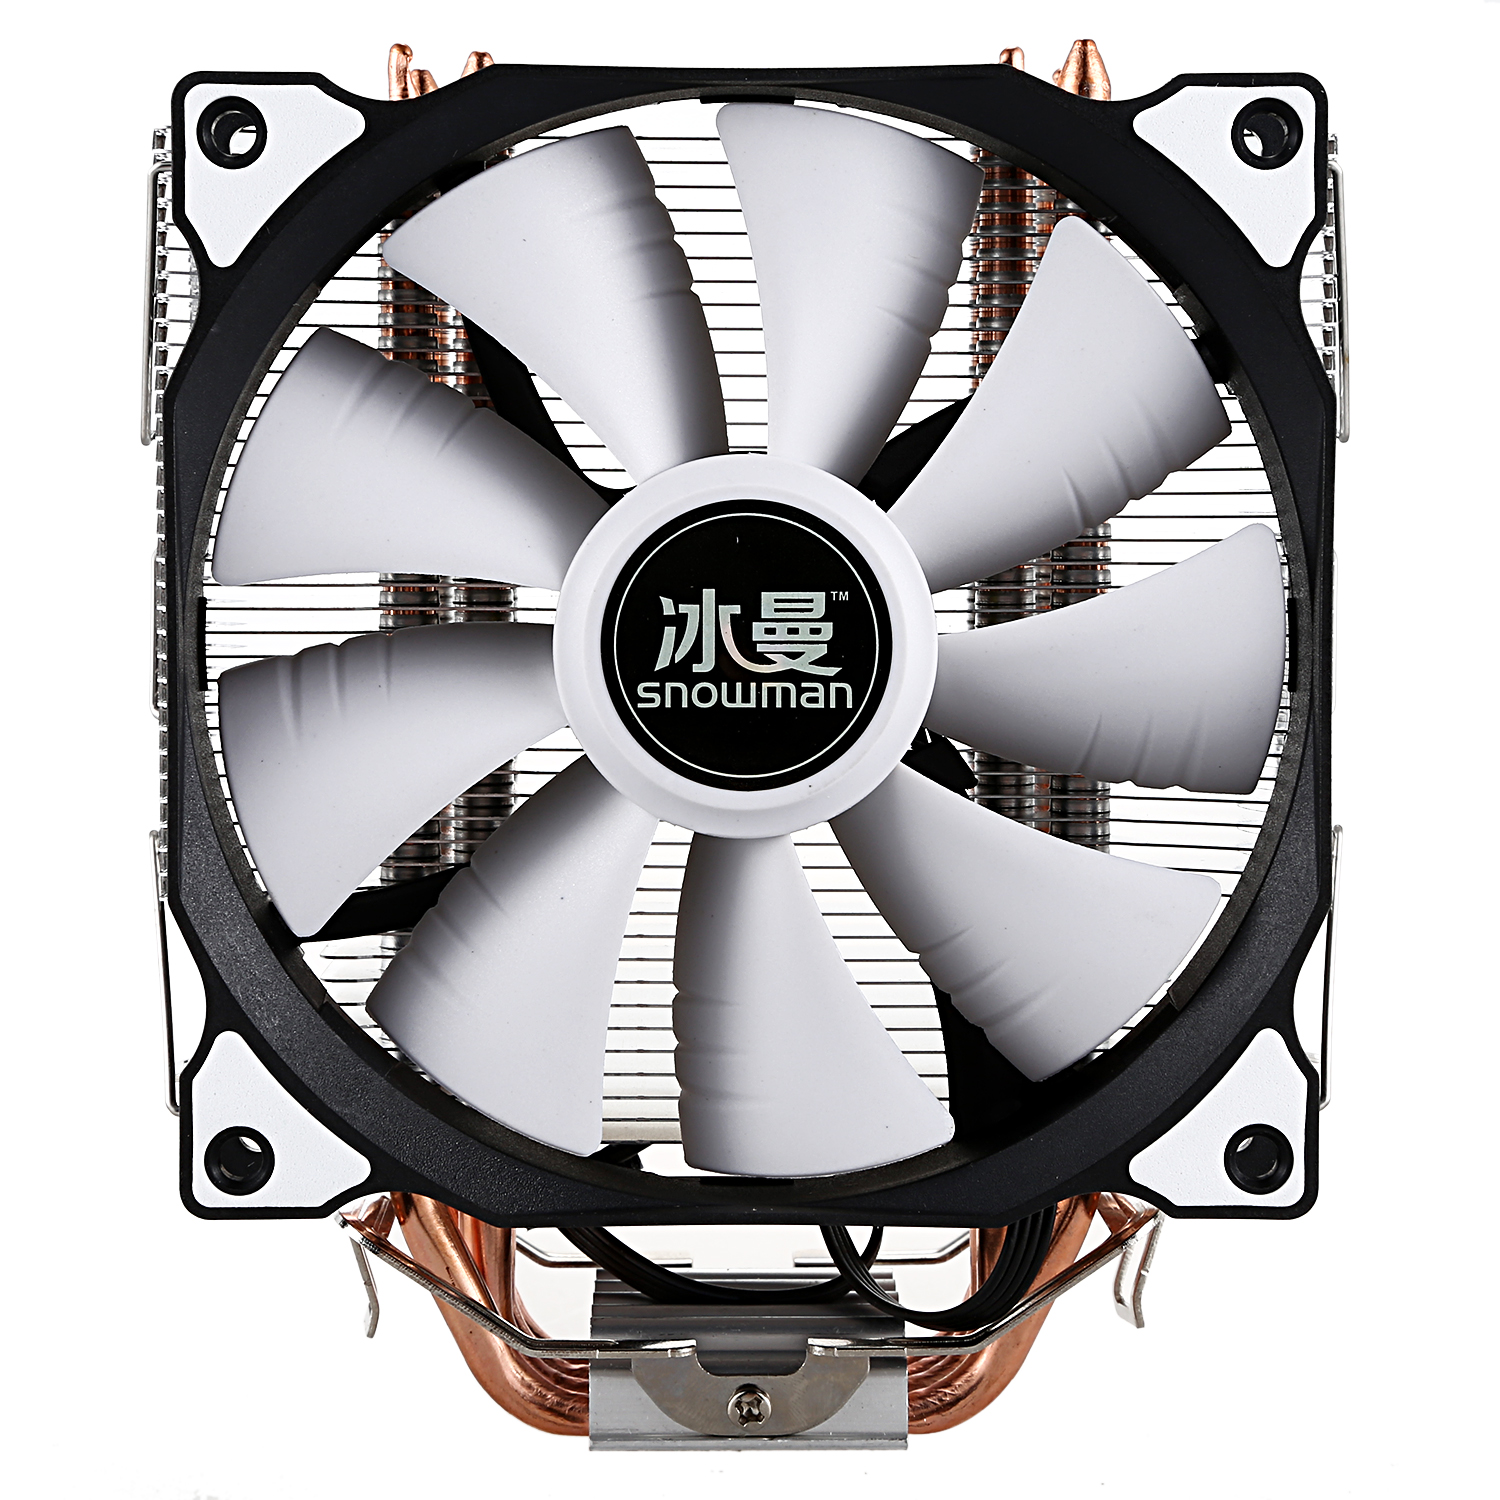 LYH-SNOWMAN CPU Cooler Master 5 Direct Contact Heatpipes Freeze Tower Cooling System CPU Cooling Fan With PWM Fans